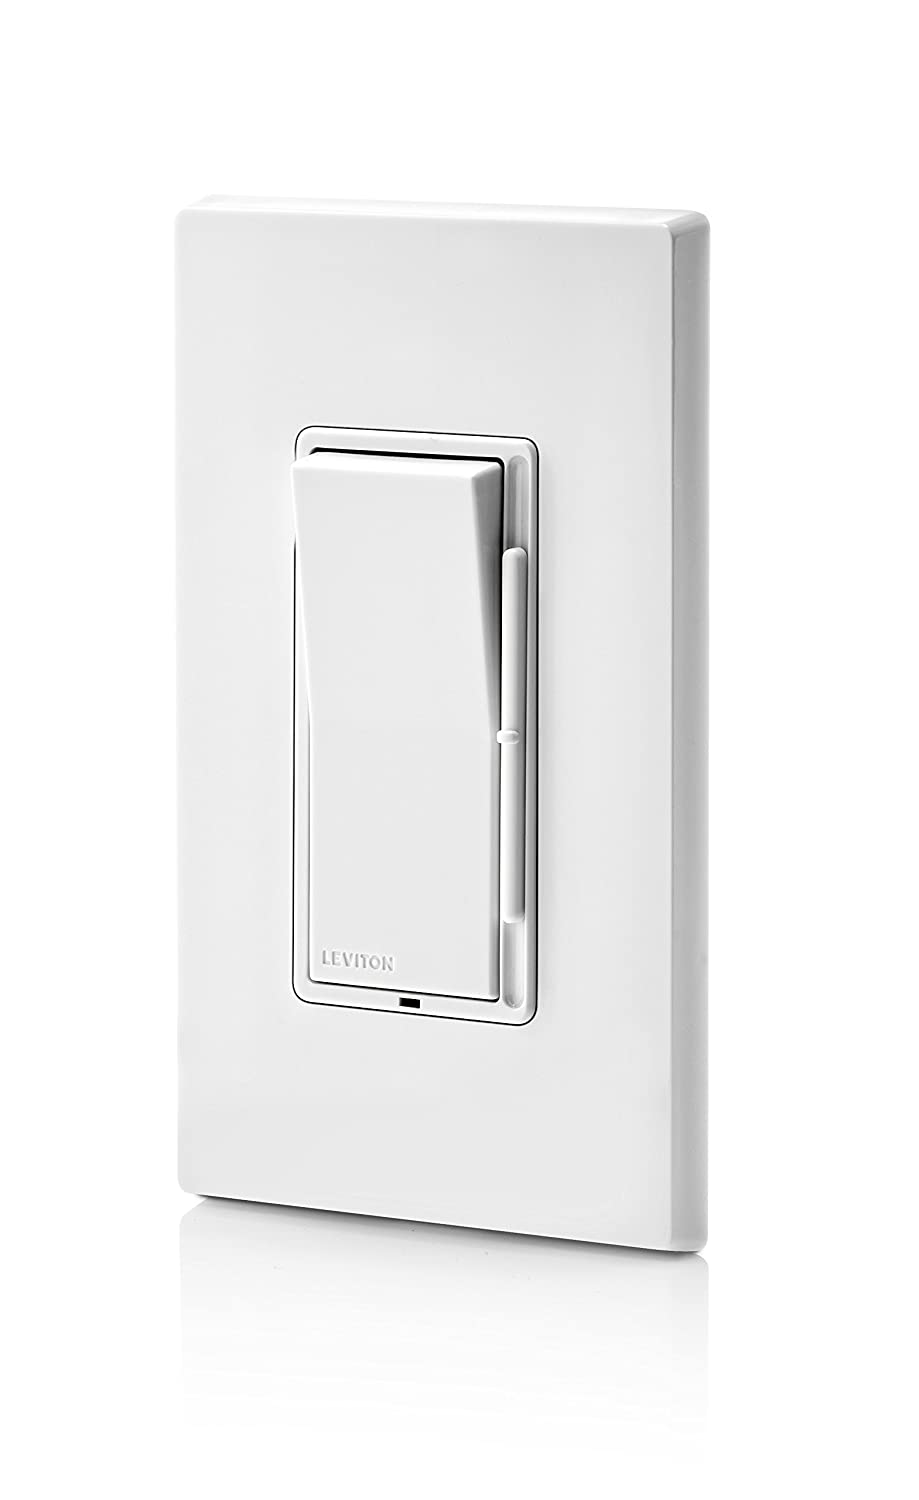 71rKT cNU0L._SL1500_ leviton dsl06 1lz decora universal rocker slide dimmer, 300 watt Leviton Outlet Wiring Diagram at bayanpartner.co